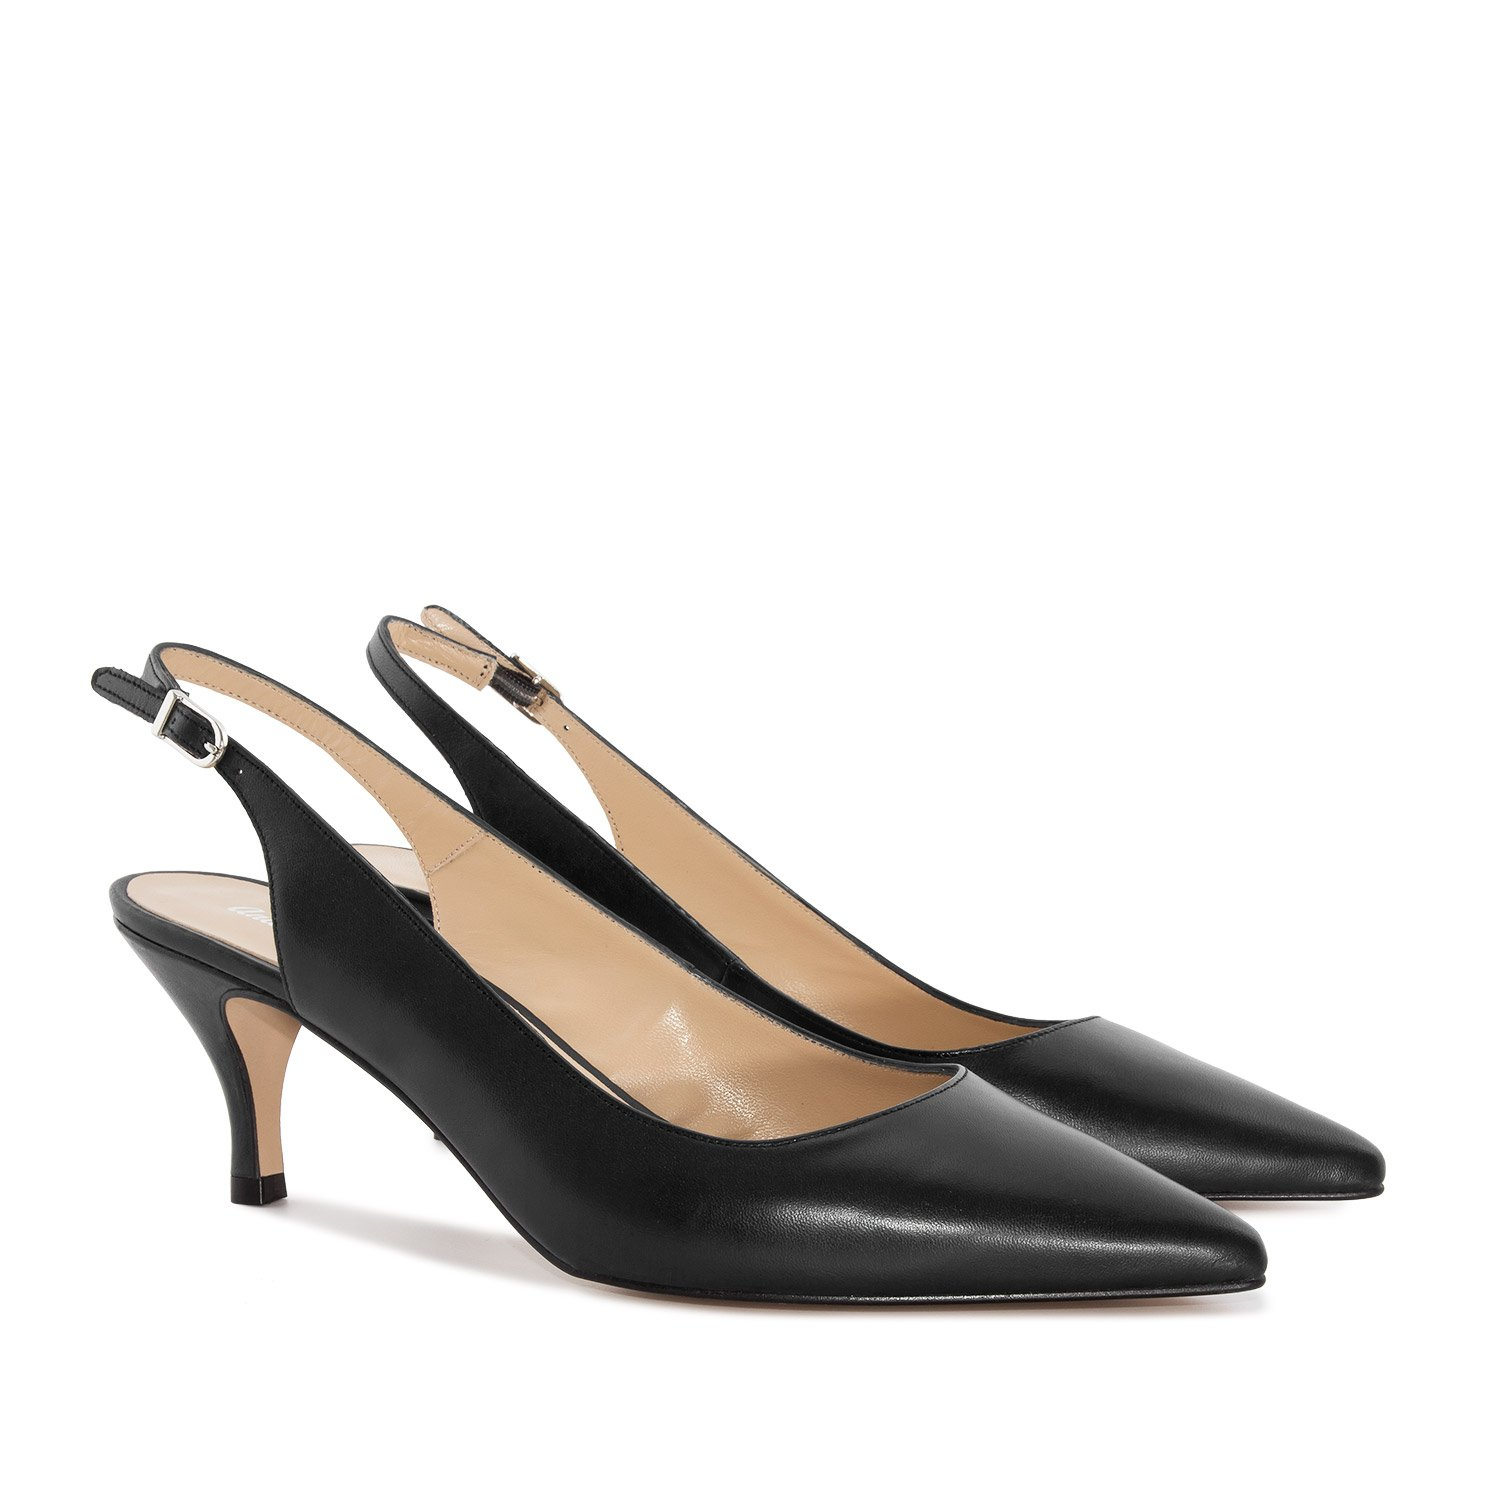 Andres Machado Fine Toe Slingback Shoes in Black Leather, 33 M EU/3 B (M) US